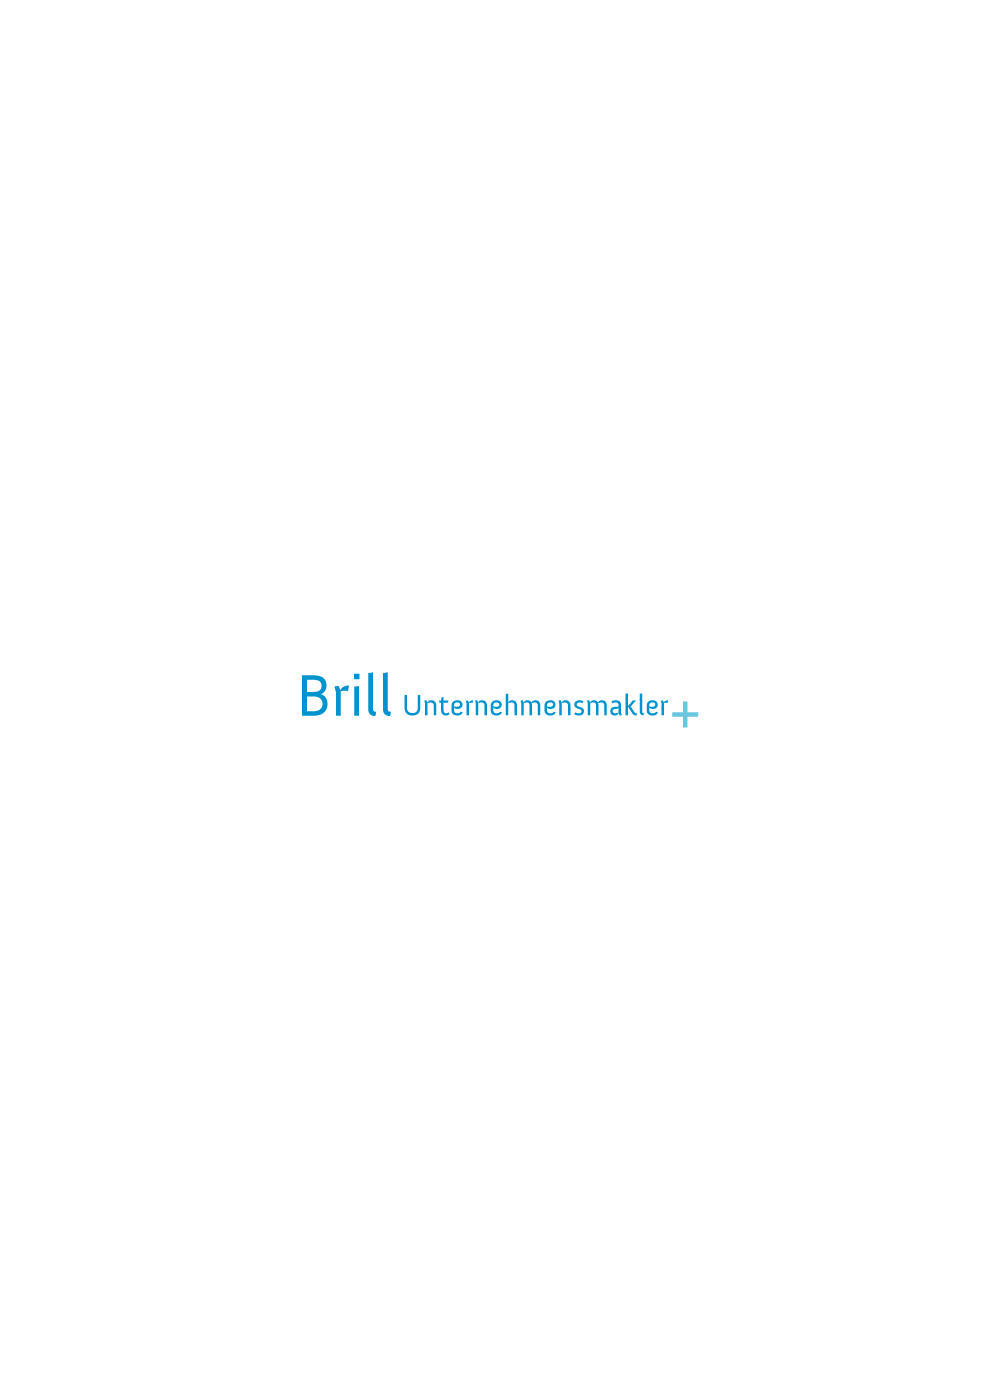 WorkBrill-Logo